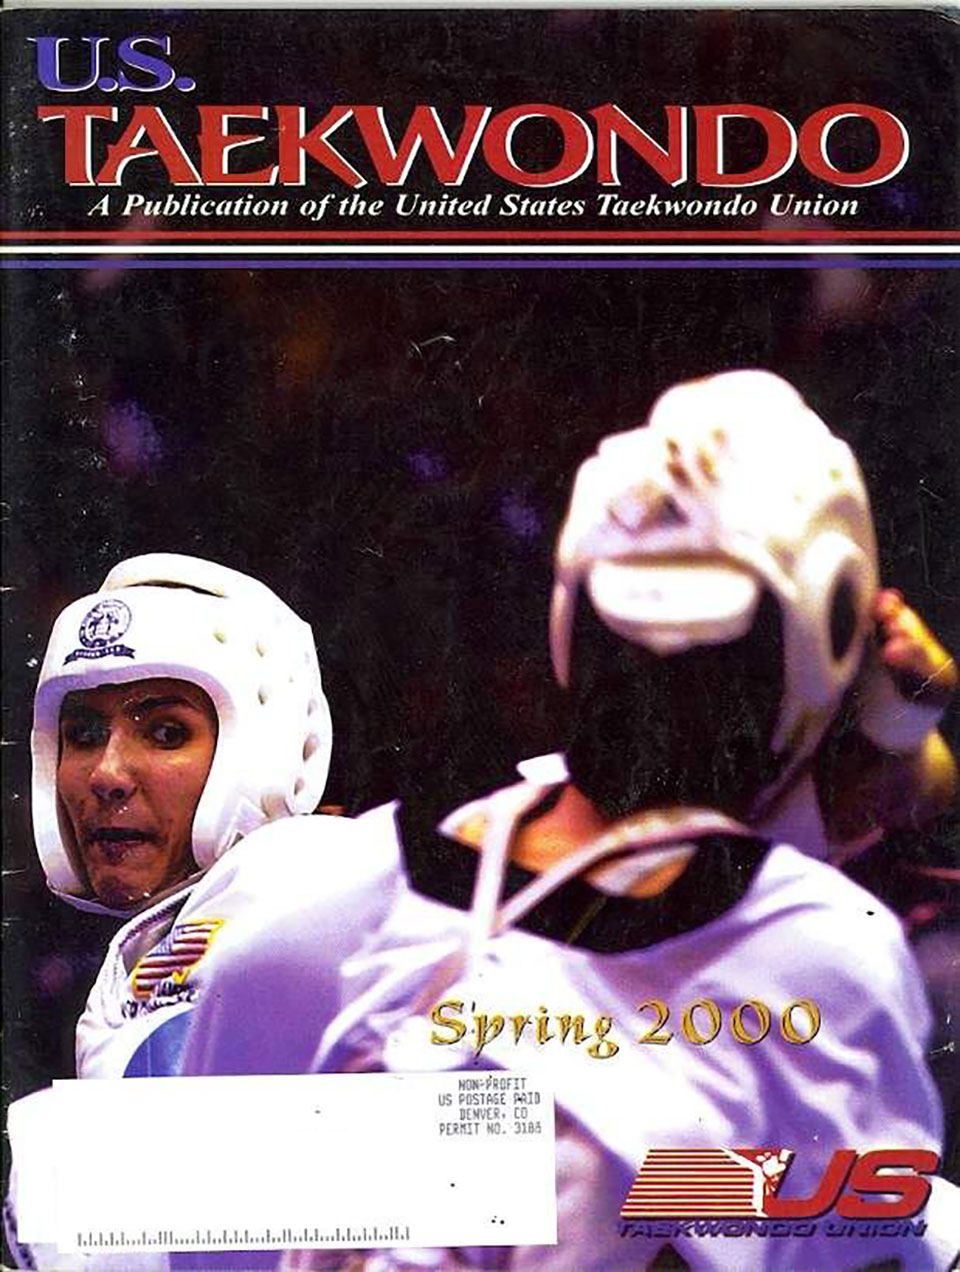 A Spring 2000 issue of U.S. Taekwondo featured Mandy Meloon on its cover. (Pintrest)